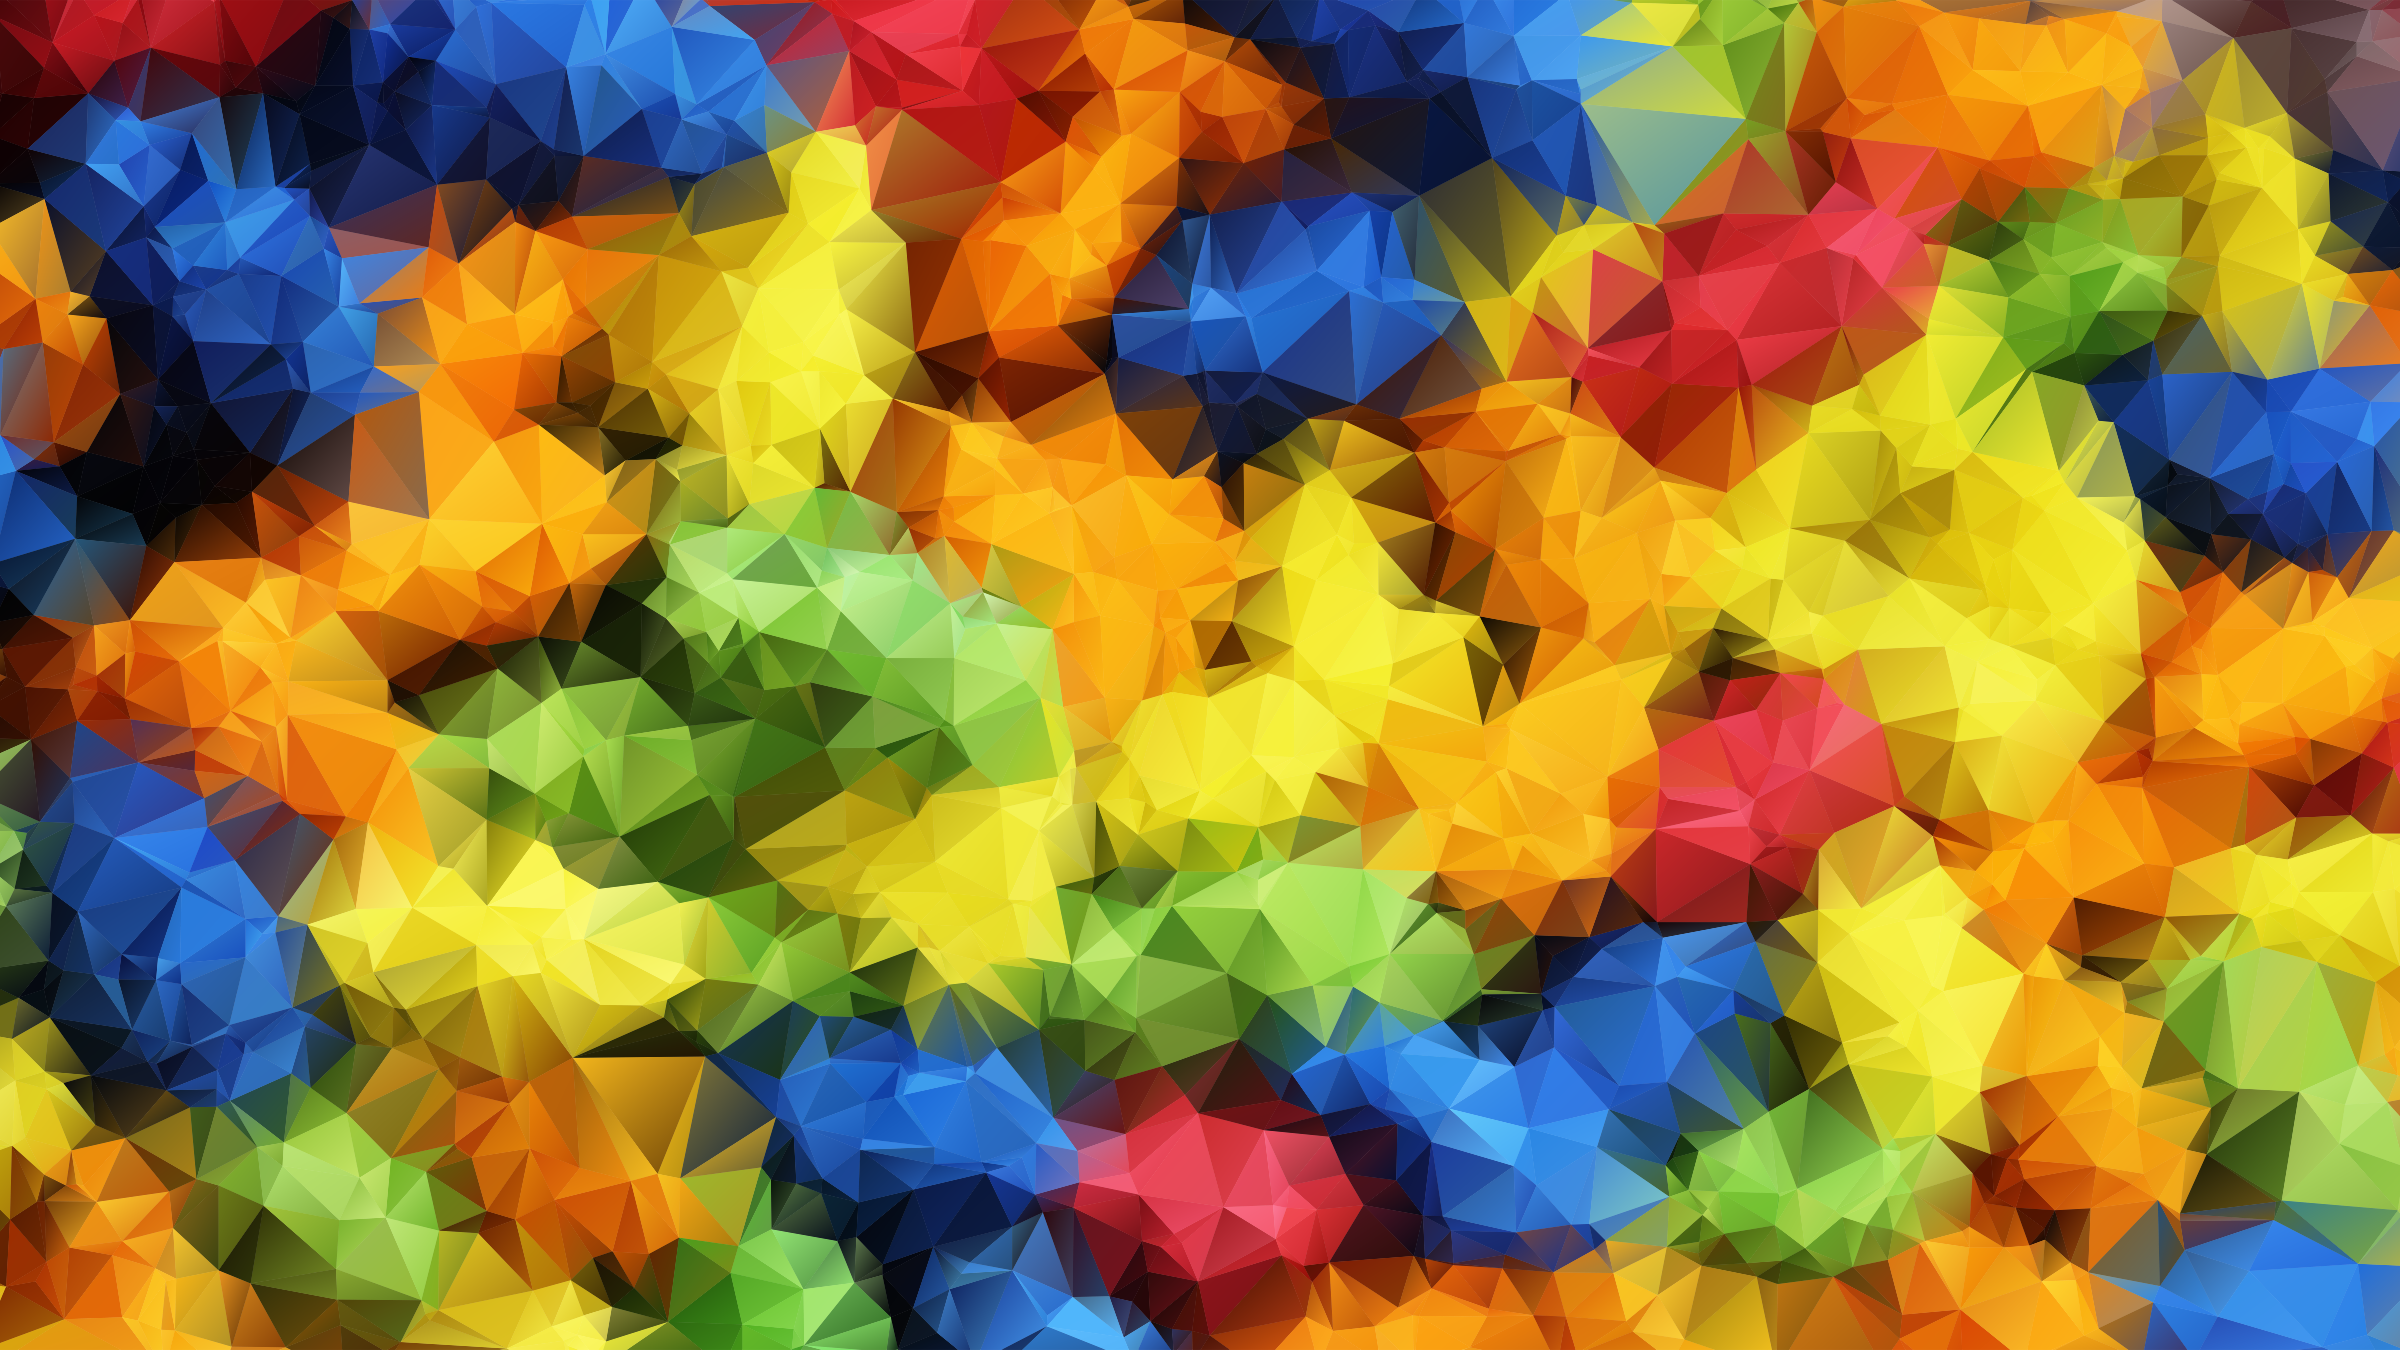 Vivid Prismatic Low Poly Background by GDJ